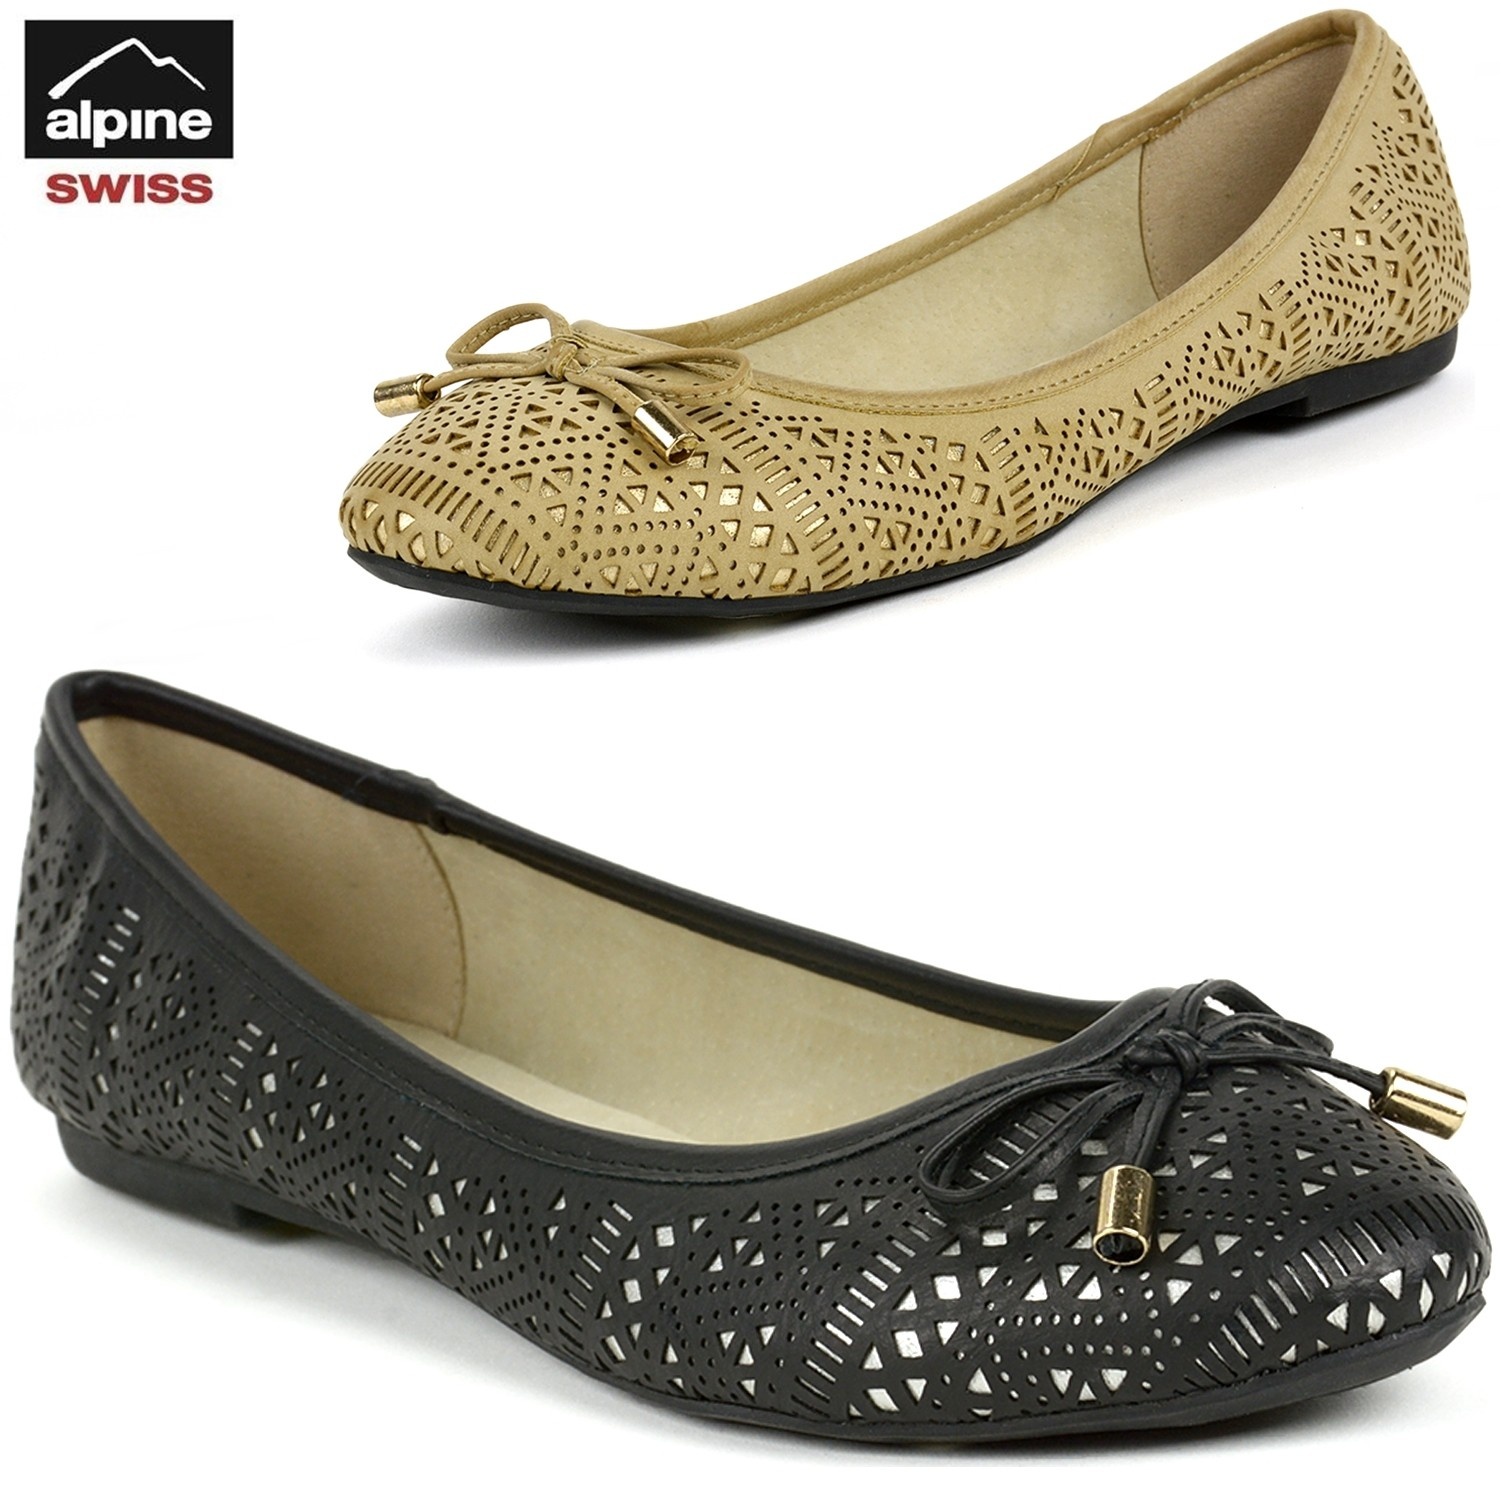 Free shipping BOTH ways on ballerina flats, from our vast selection of styles. Fast delivery, and 24/7/ real-person service with a smile. Click or call